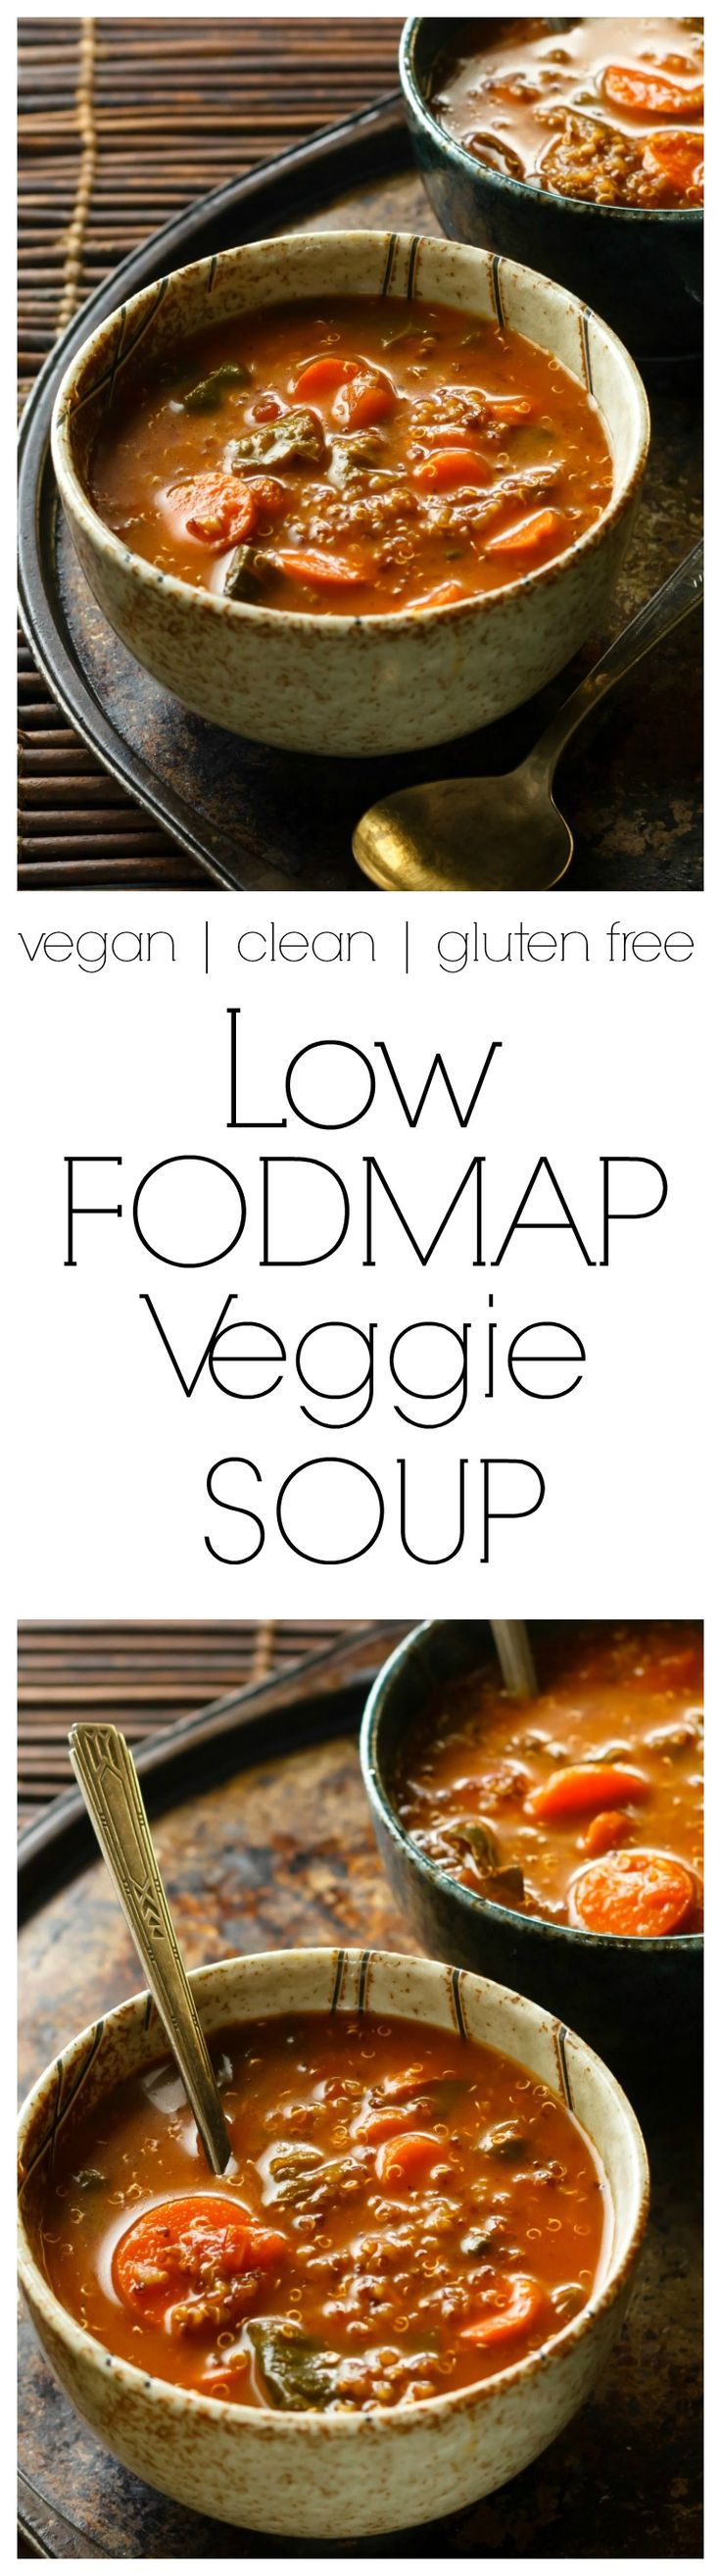 Low FODMAP Soup Recipe | filling, satisfying and non-irritating for IBS | http://eathealthyeathappy.com